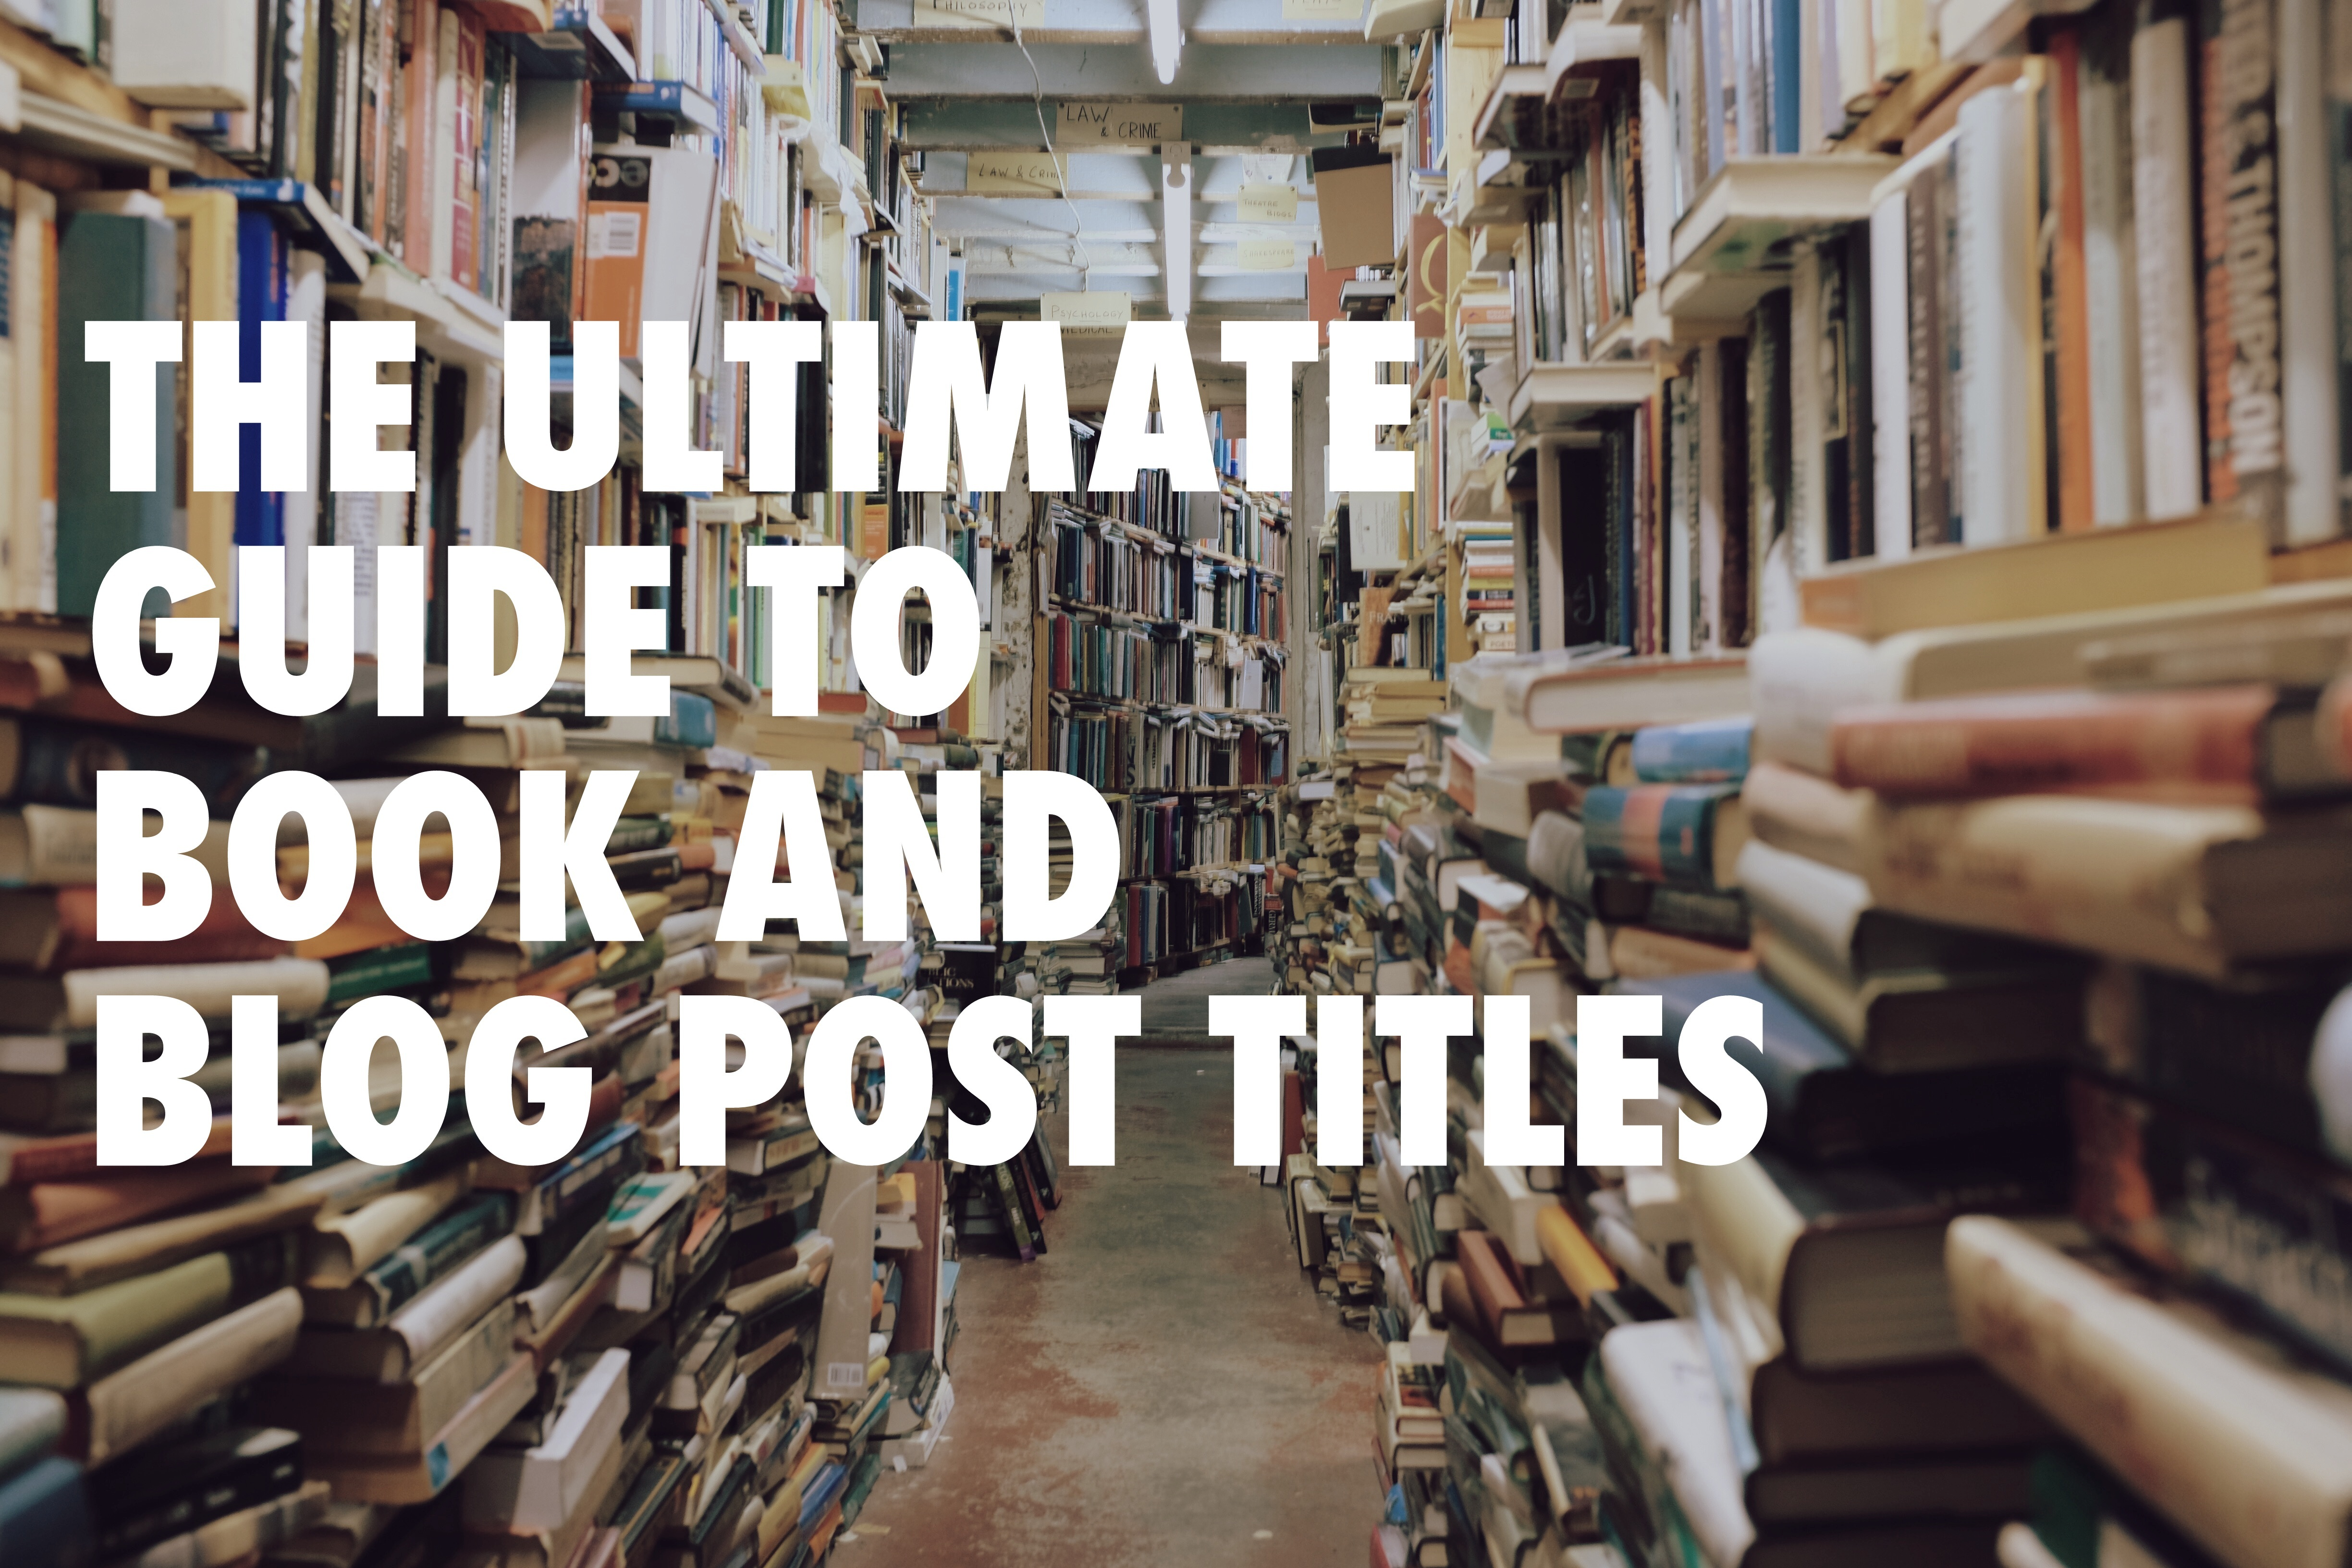 The Ultimate Guide to Titles: Book Titles, Article Titles, and More